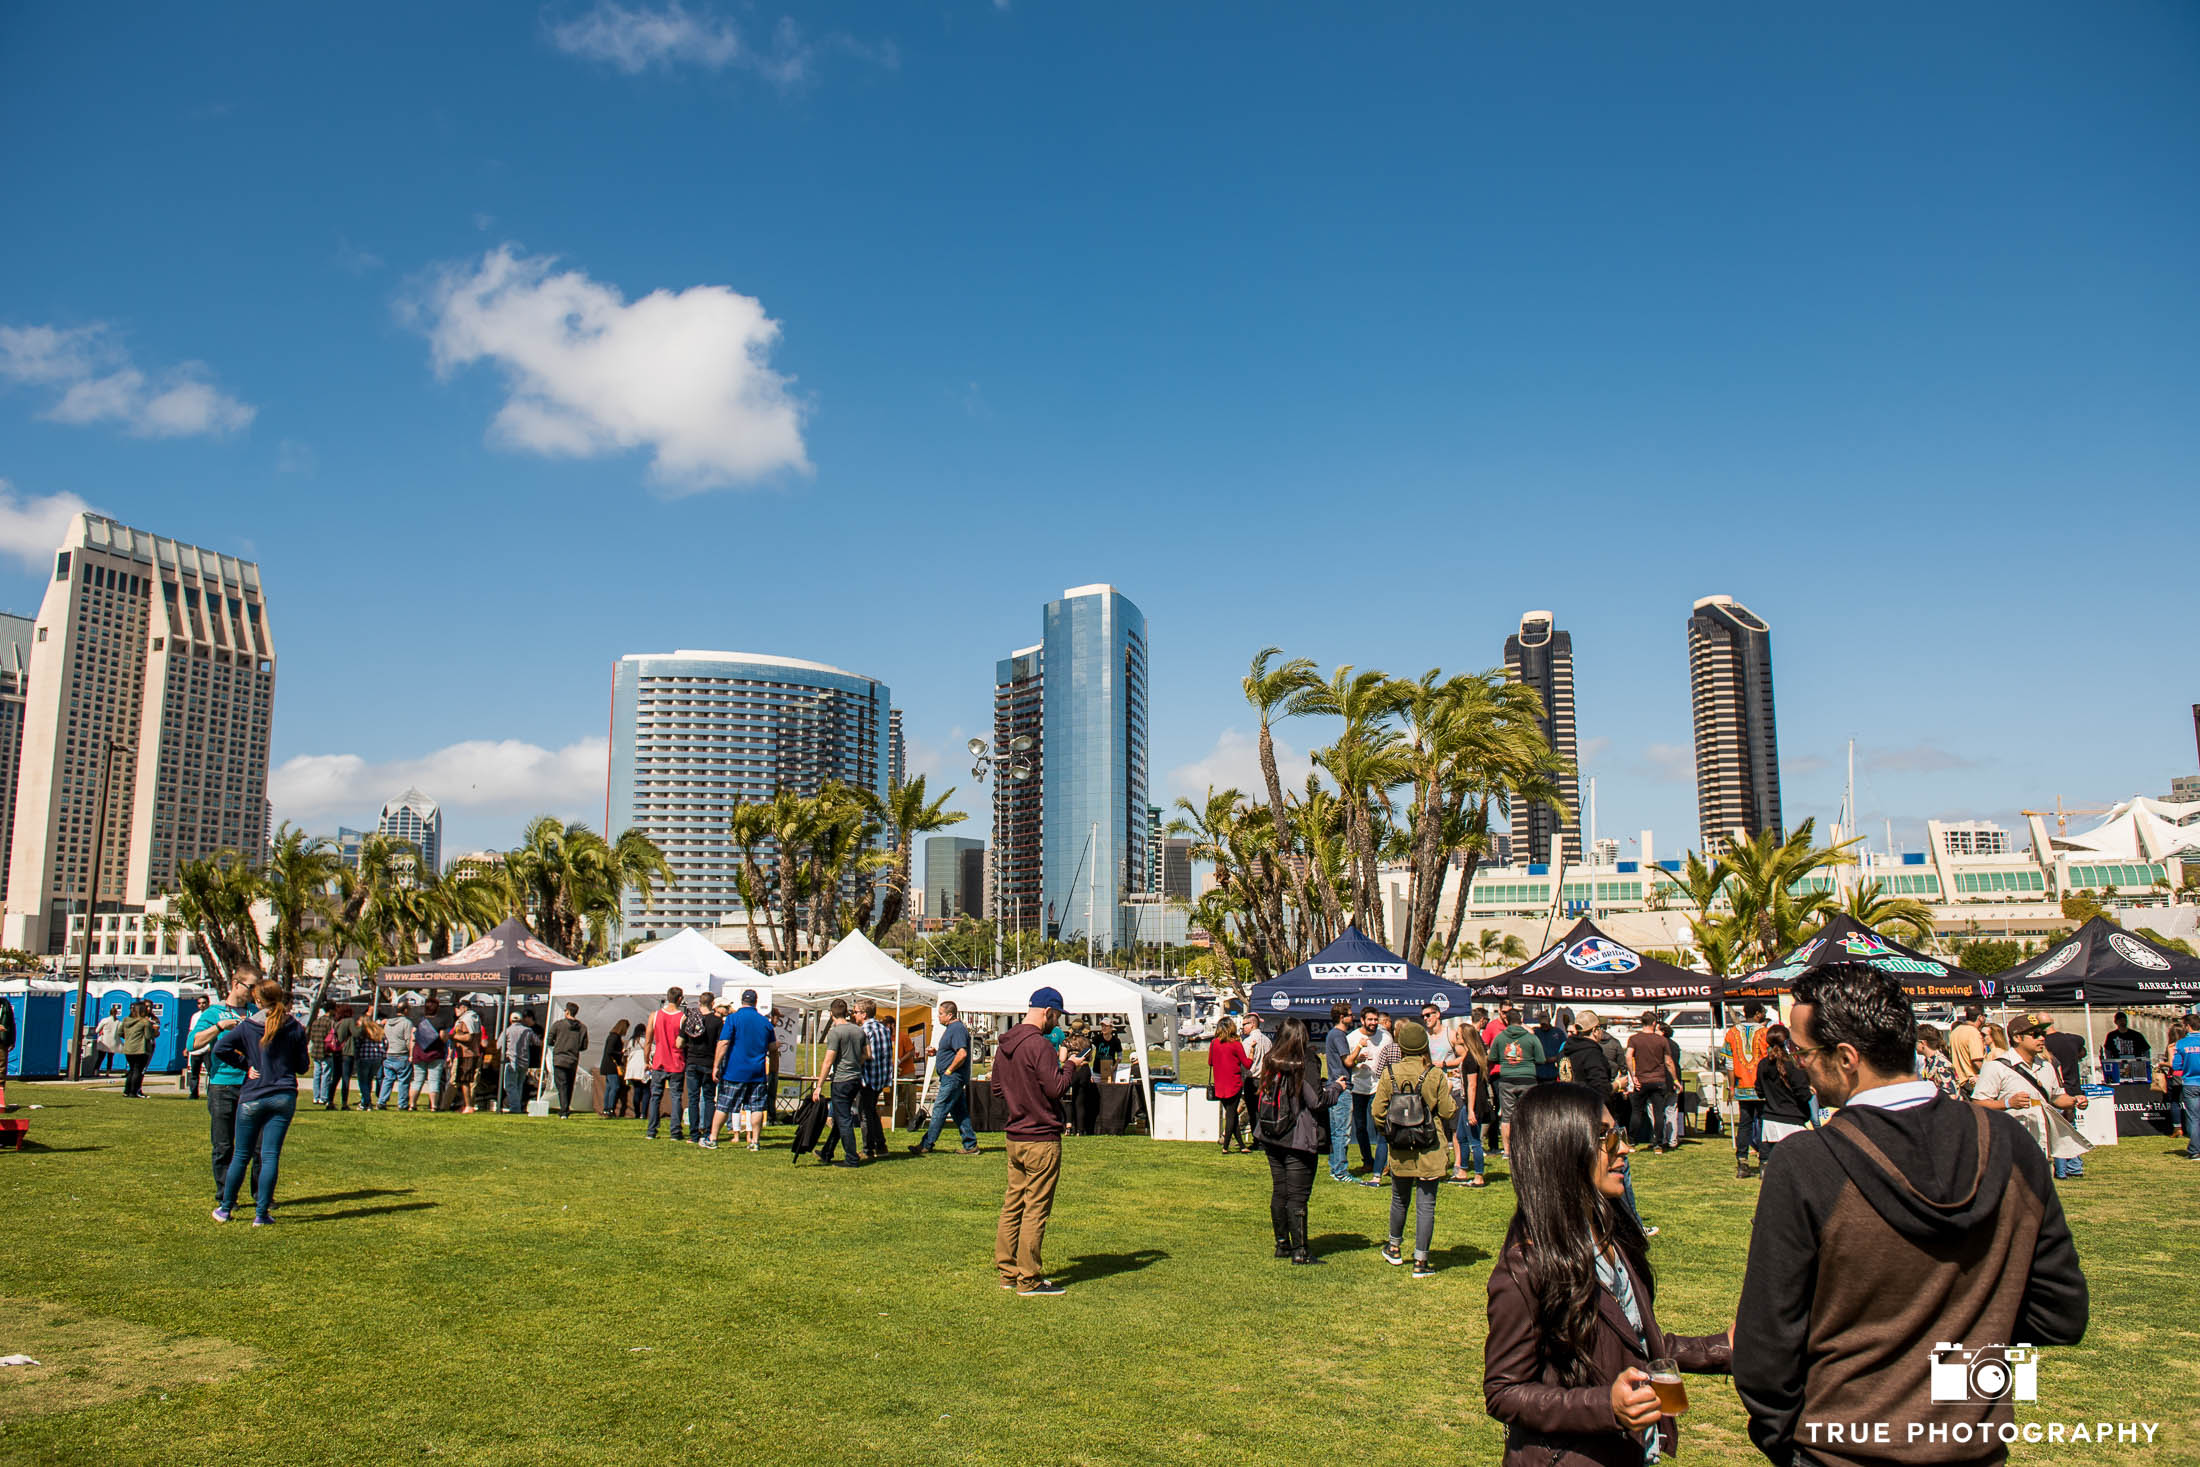 Overall view of eventgoers at local cancer charity event, Best Coast Beer Fest in Downtown San Diego